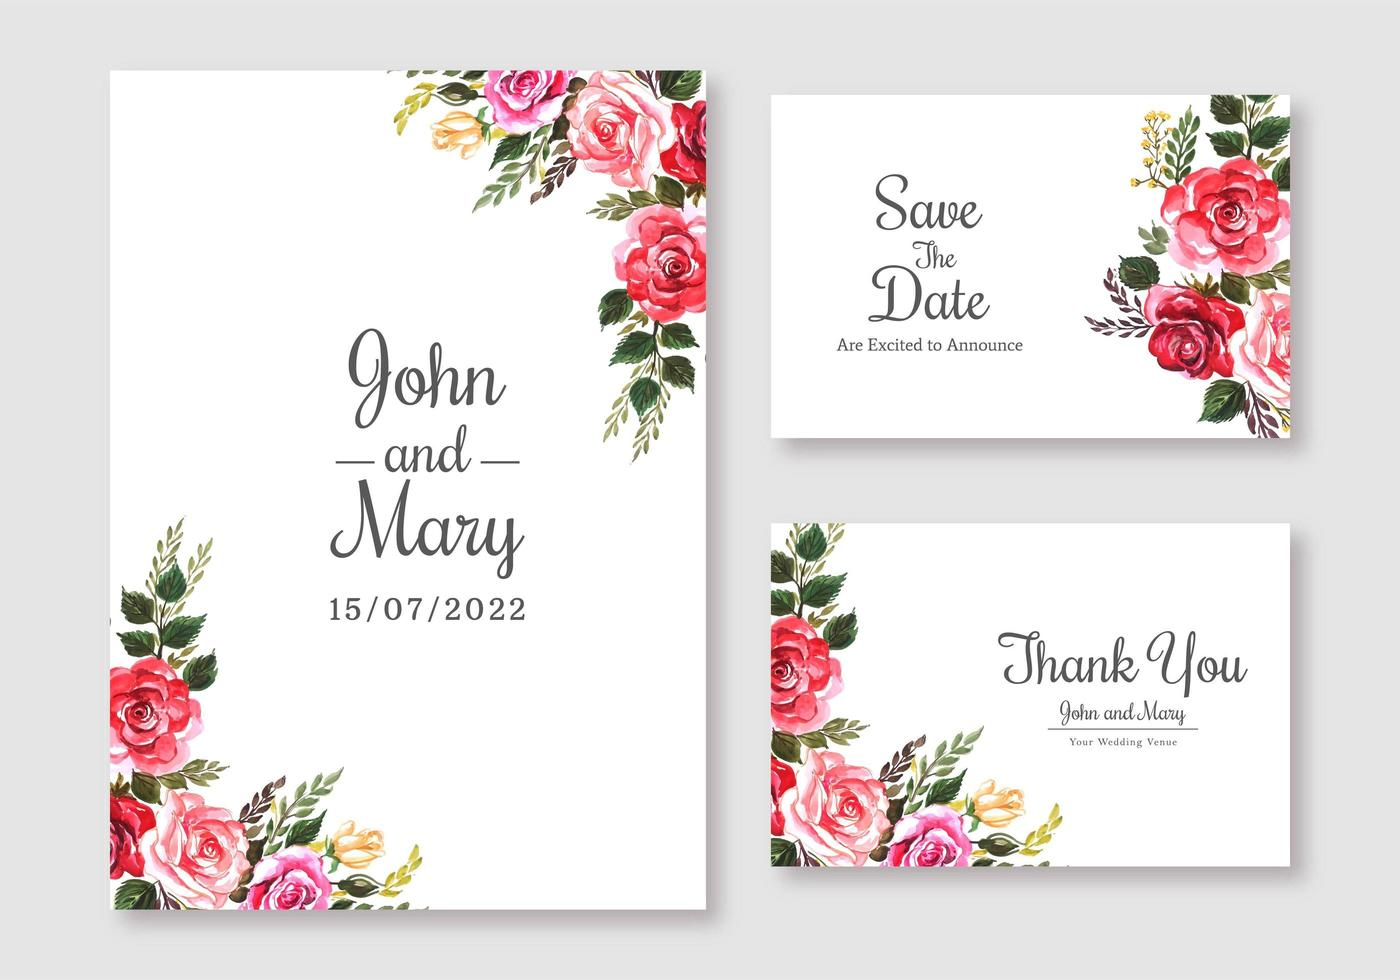 colorful floral wedding cards set 1041338 vector art at